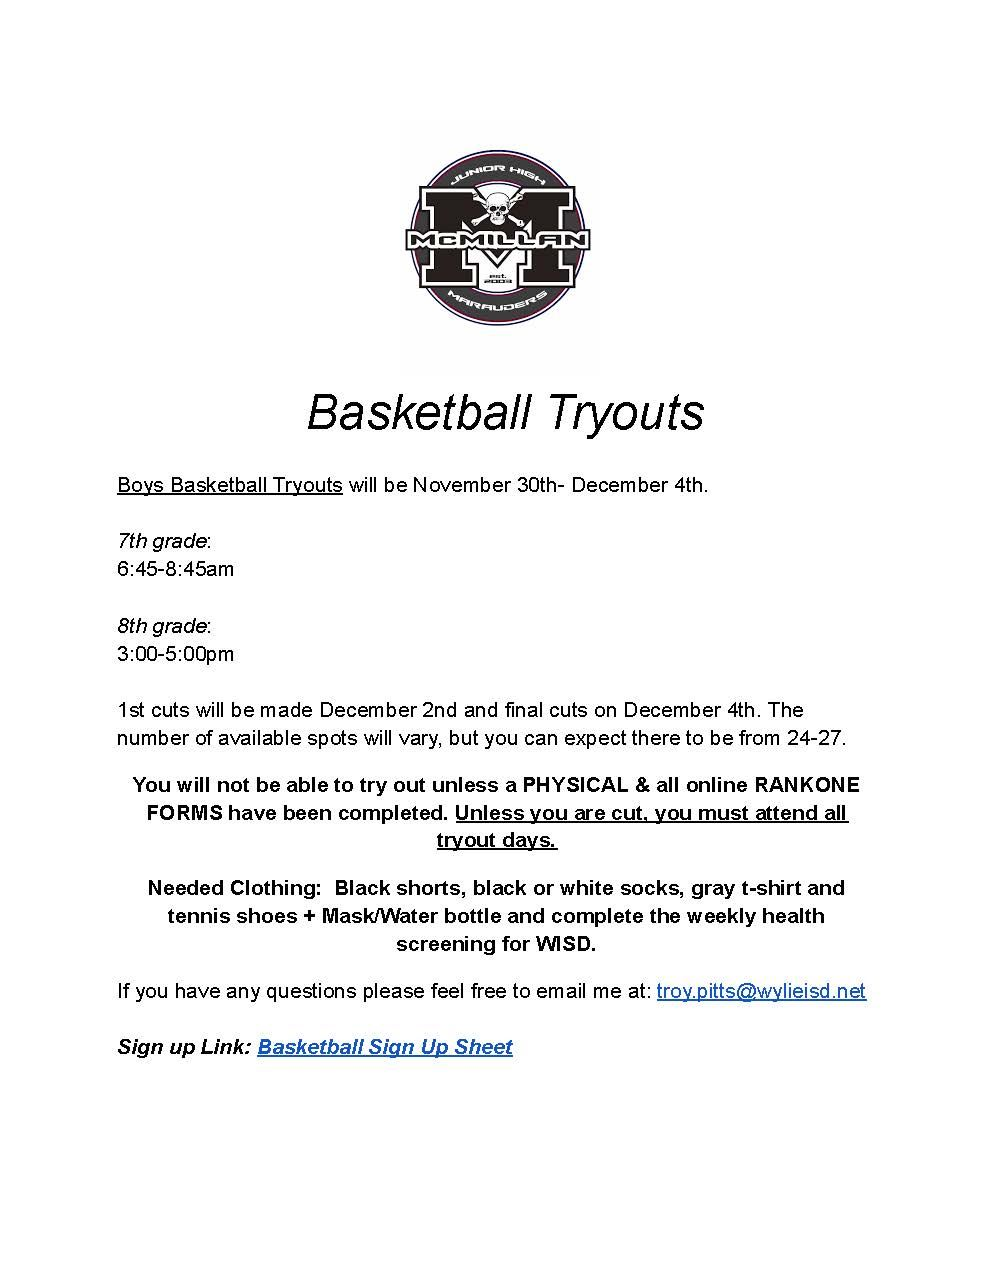 2020 Boys Basketball Tryouts